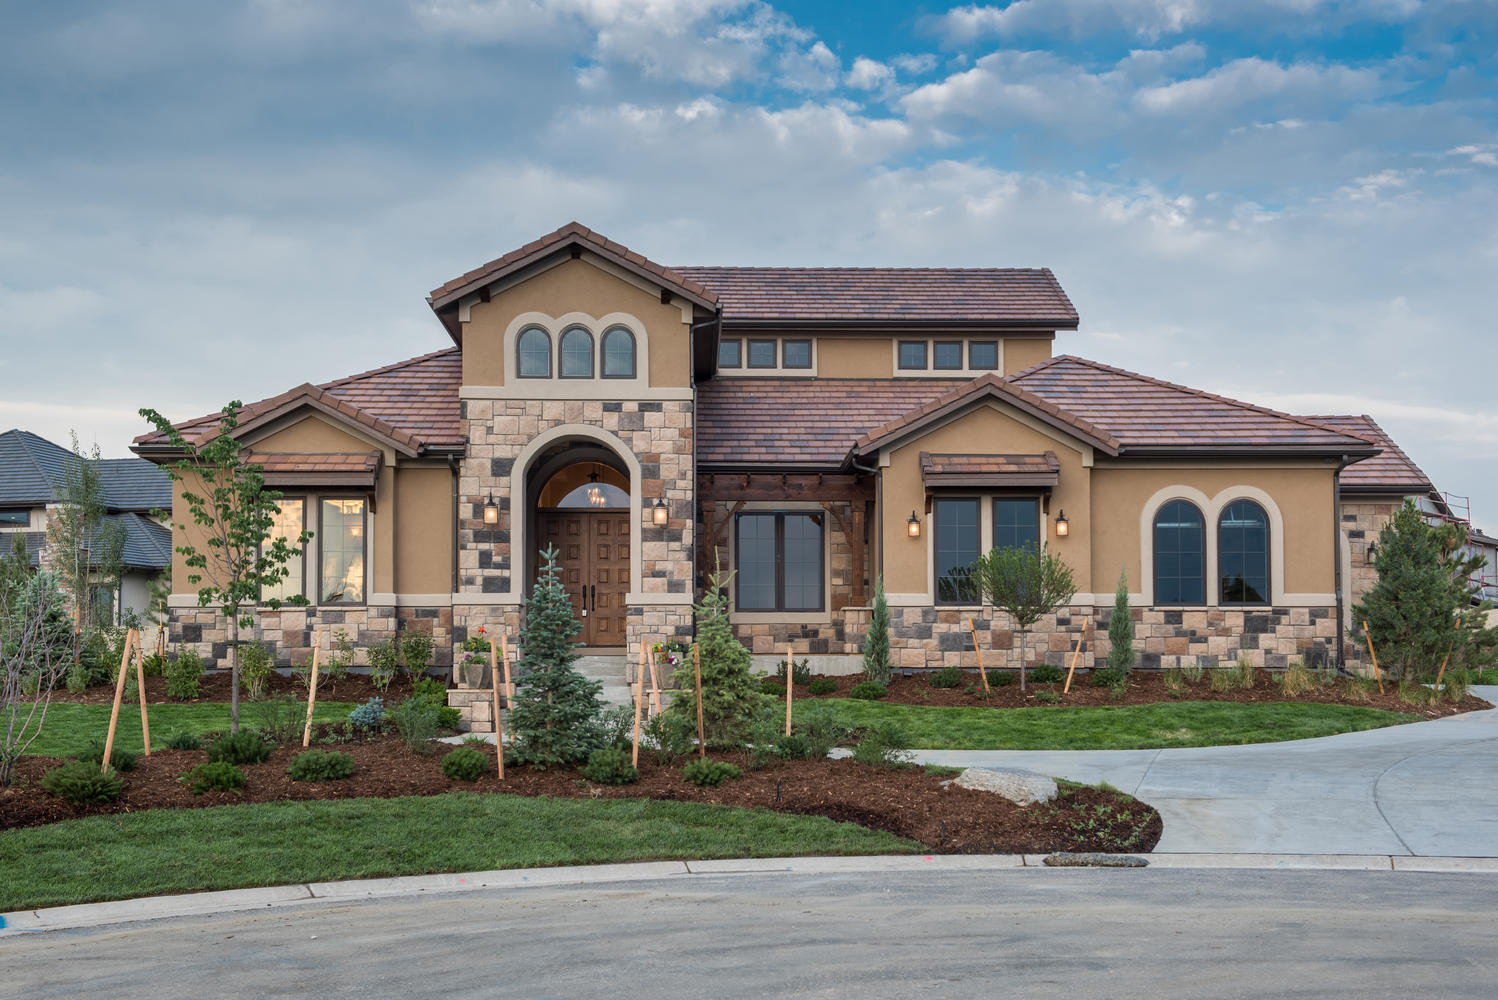 Single Family Home for Sale at The Yorkshire by Emerald Homes at Estancia 6758 S Dunkirk Court Centennial, Colorado, 80016 United States